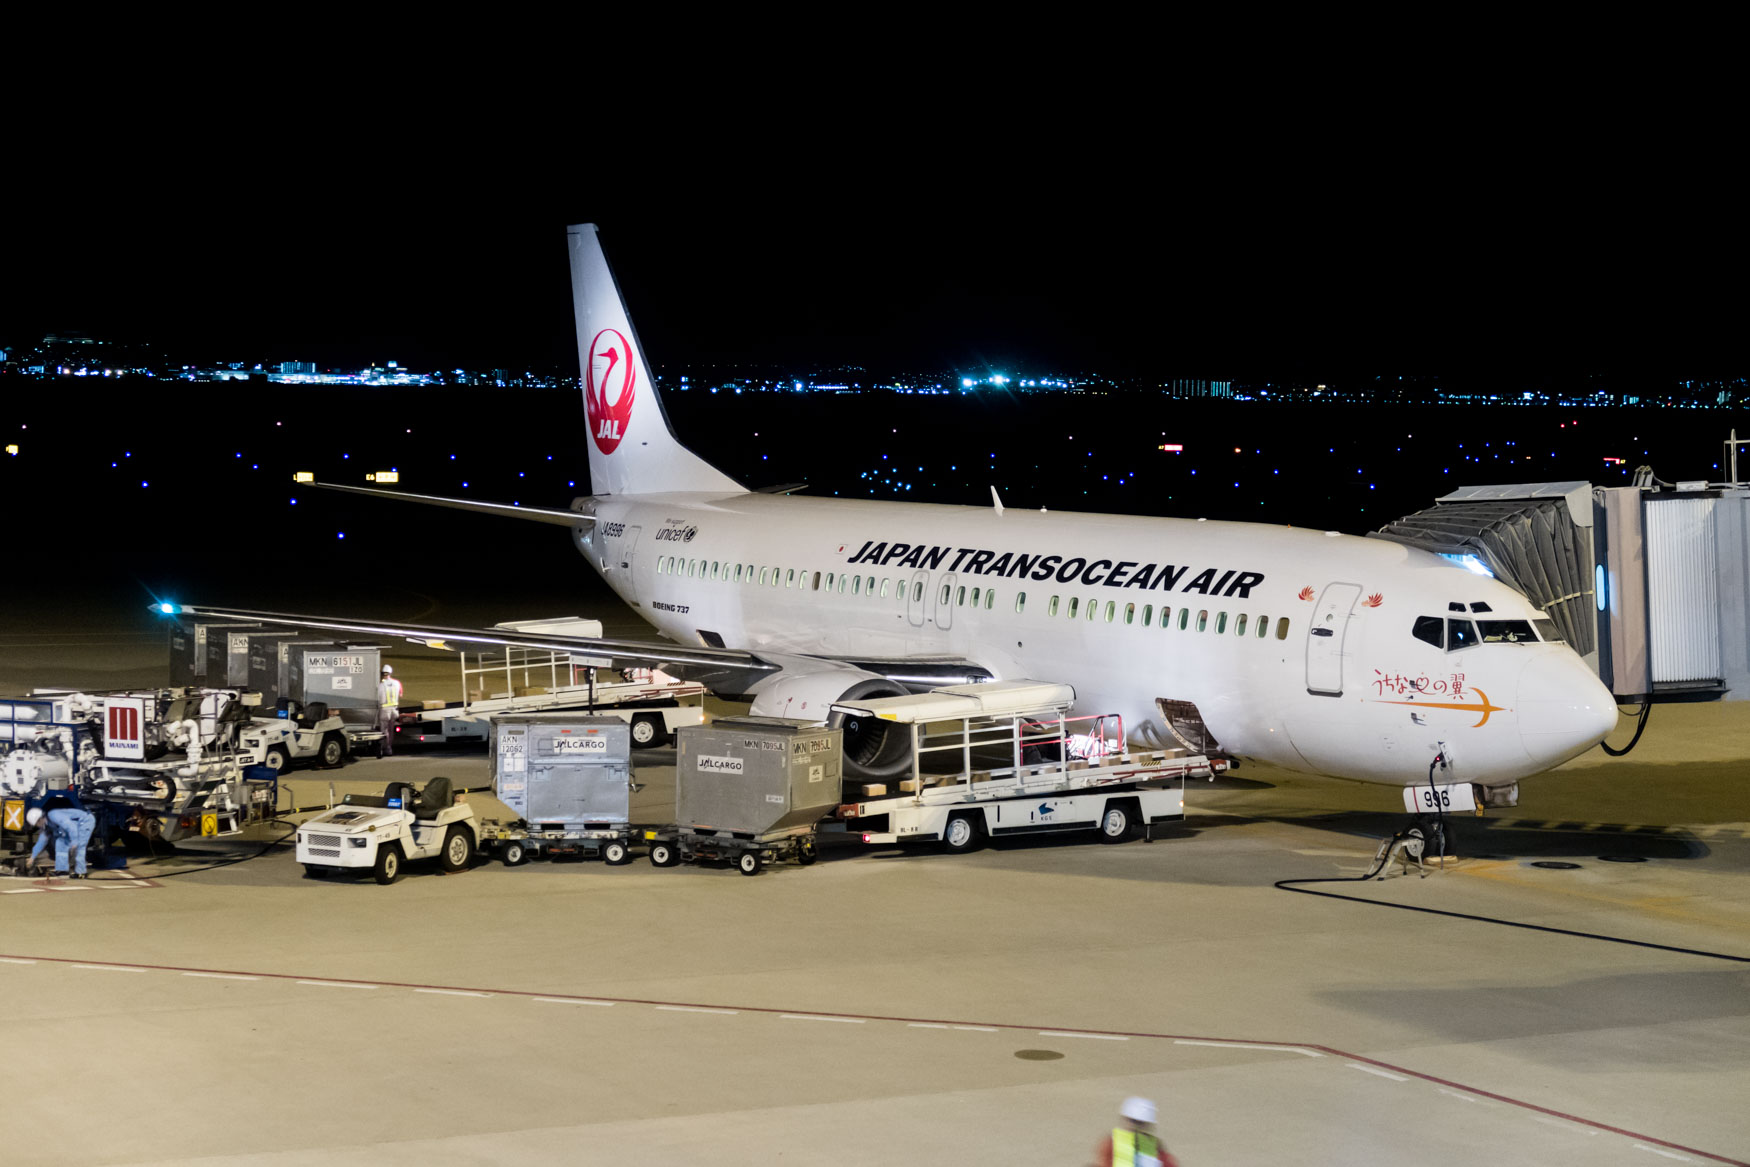 Japan Transocean Air Boeing 737-400